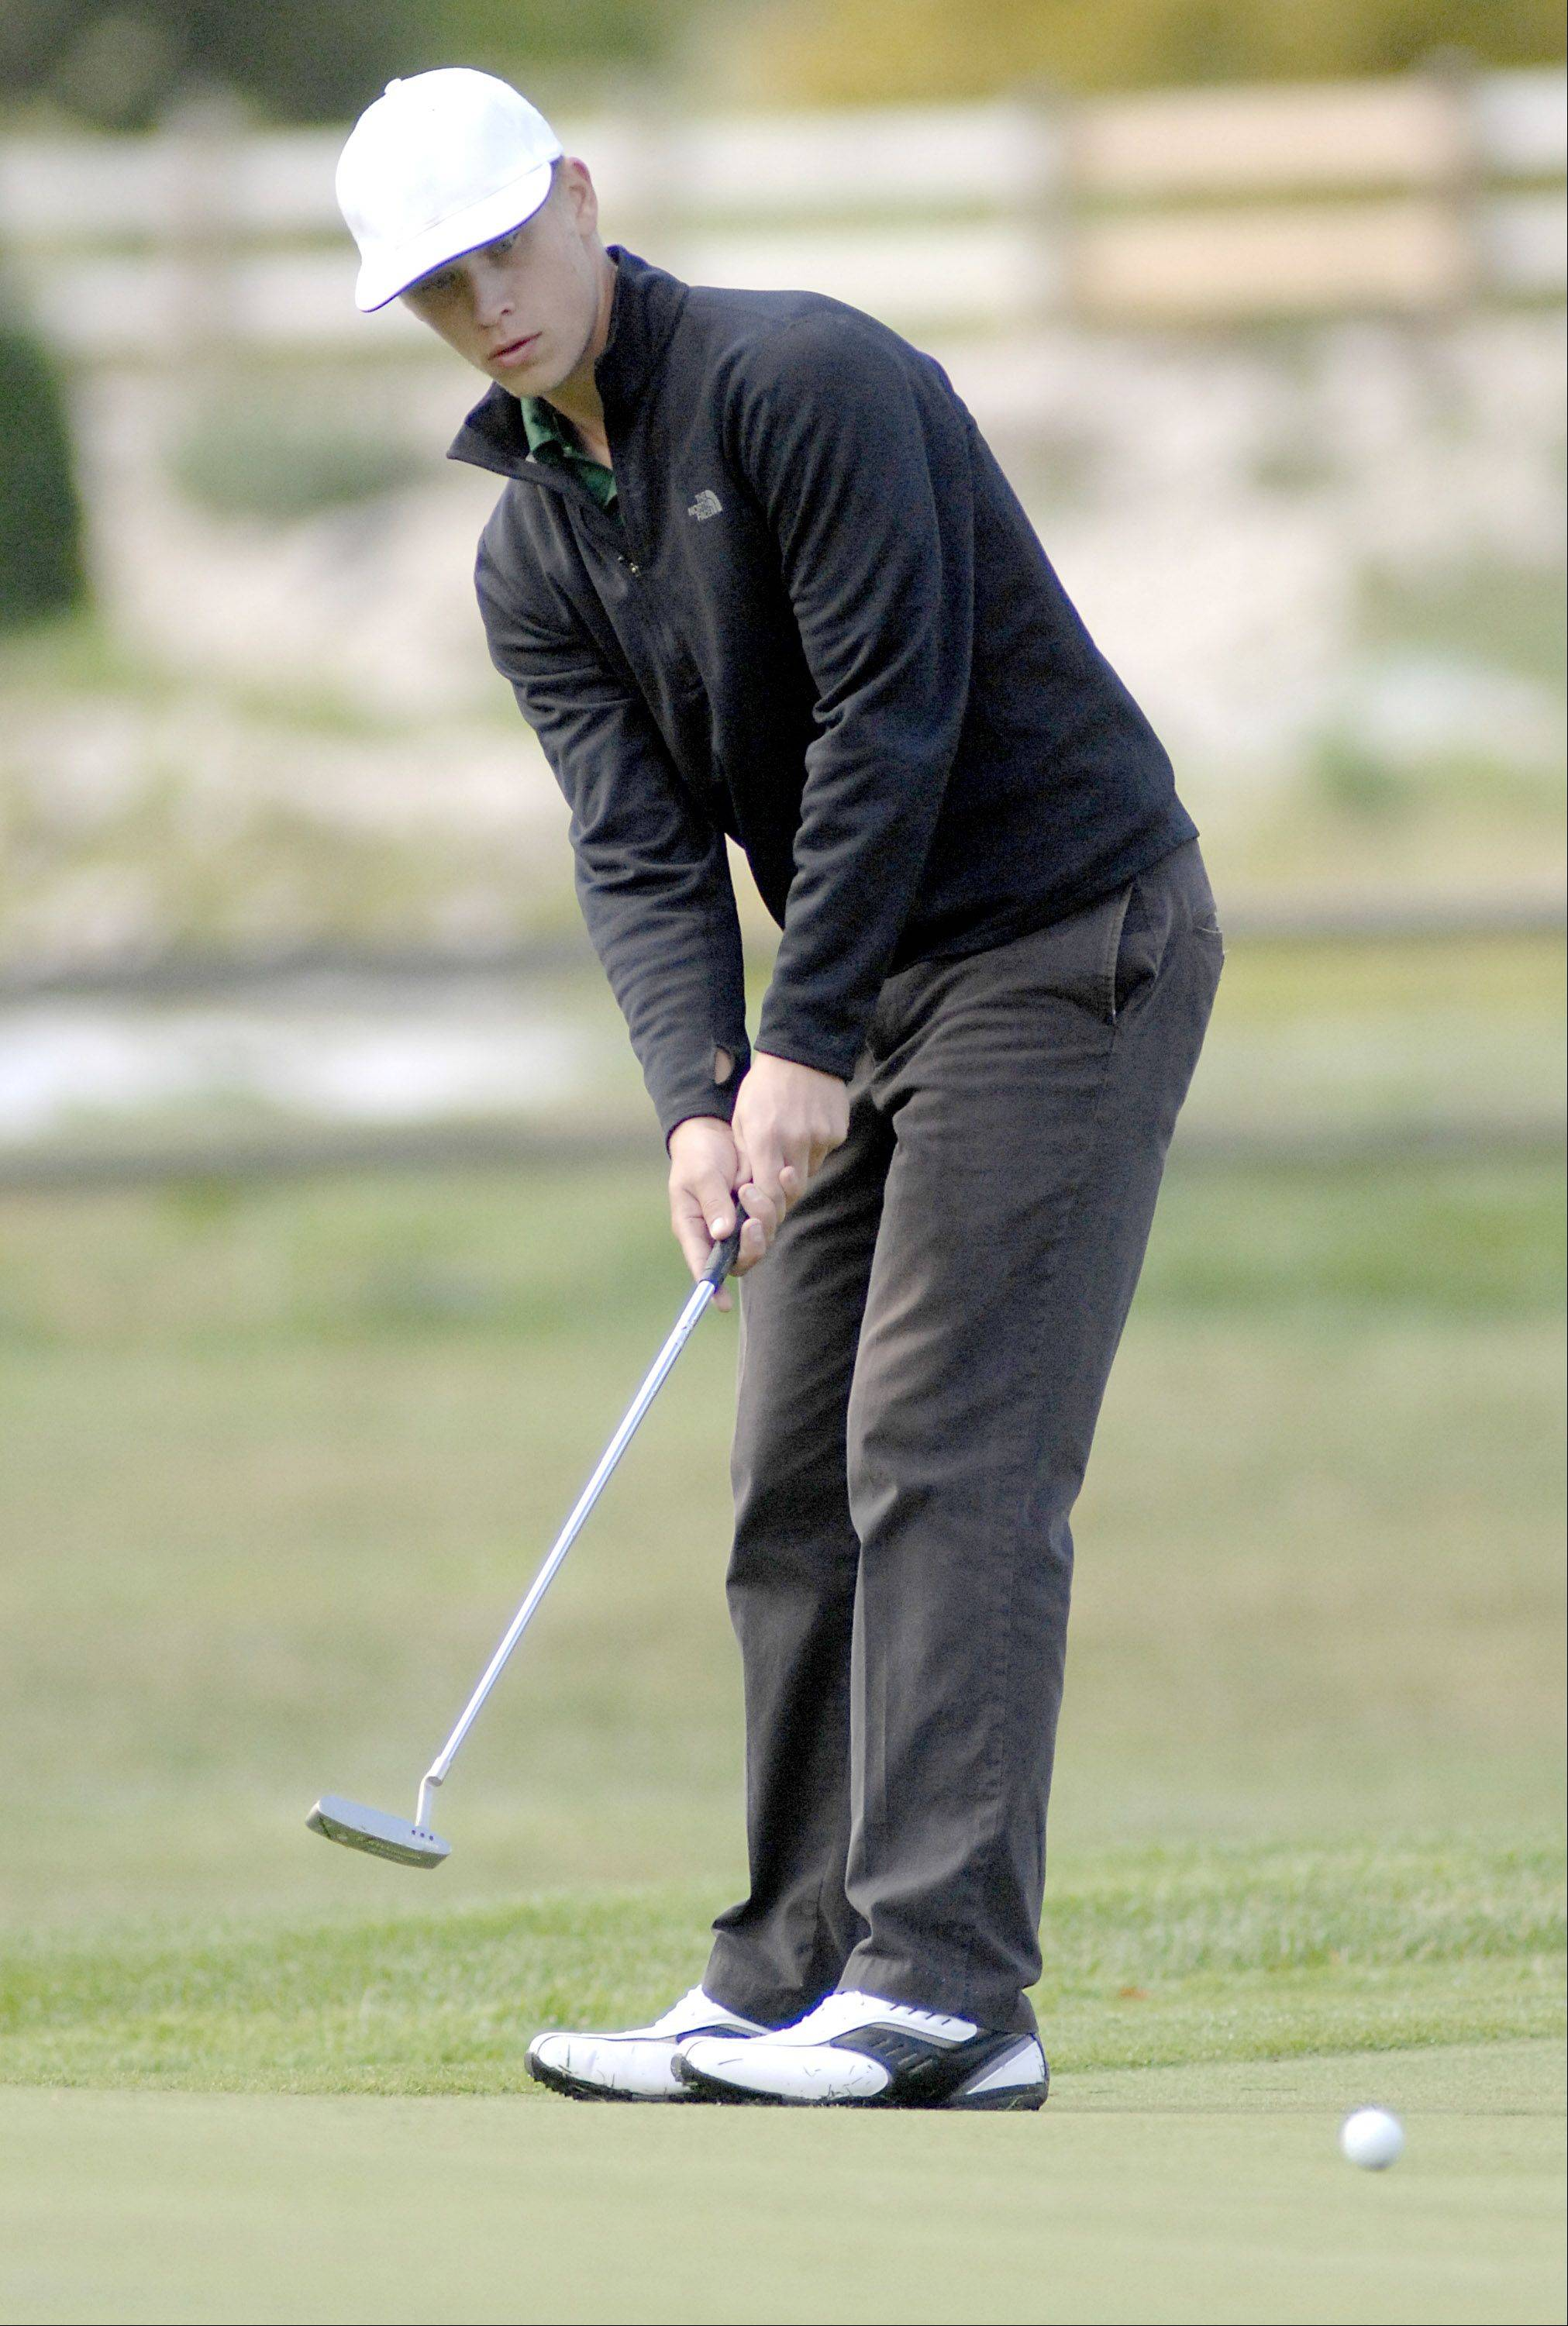 Grayslake Central's Kyle Balling on the sixth green in the Fox Valley Conference tournament at Crystal Woods Golf Course in Woodstock on Thursday, September 27.